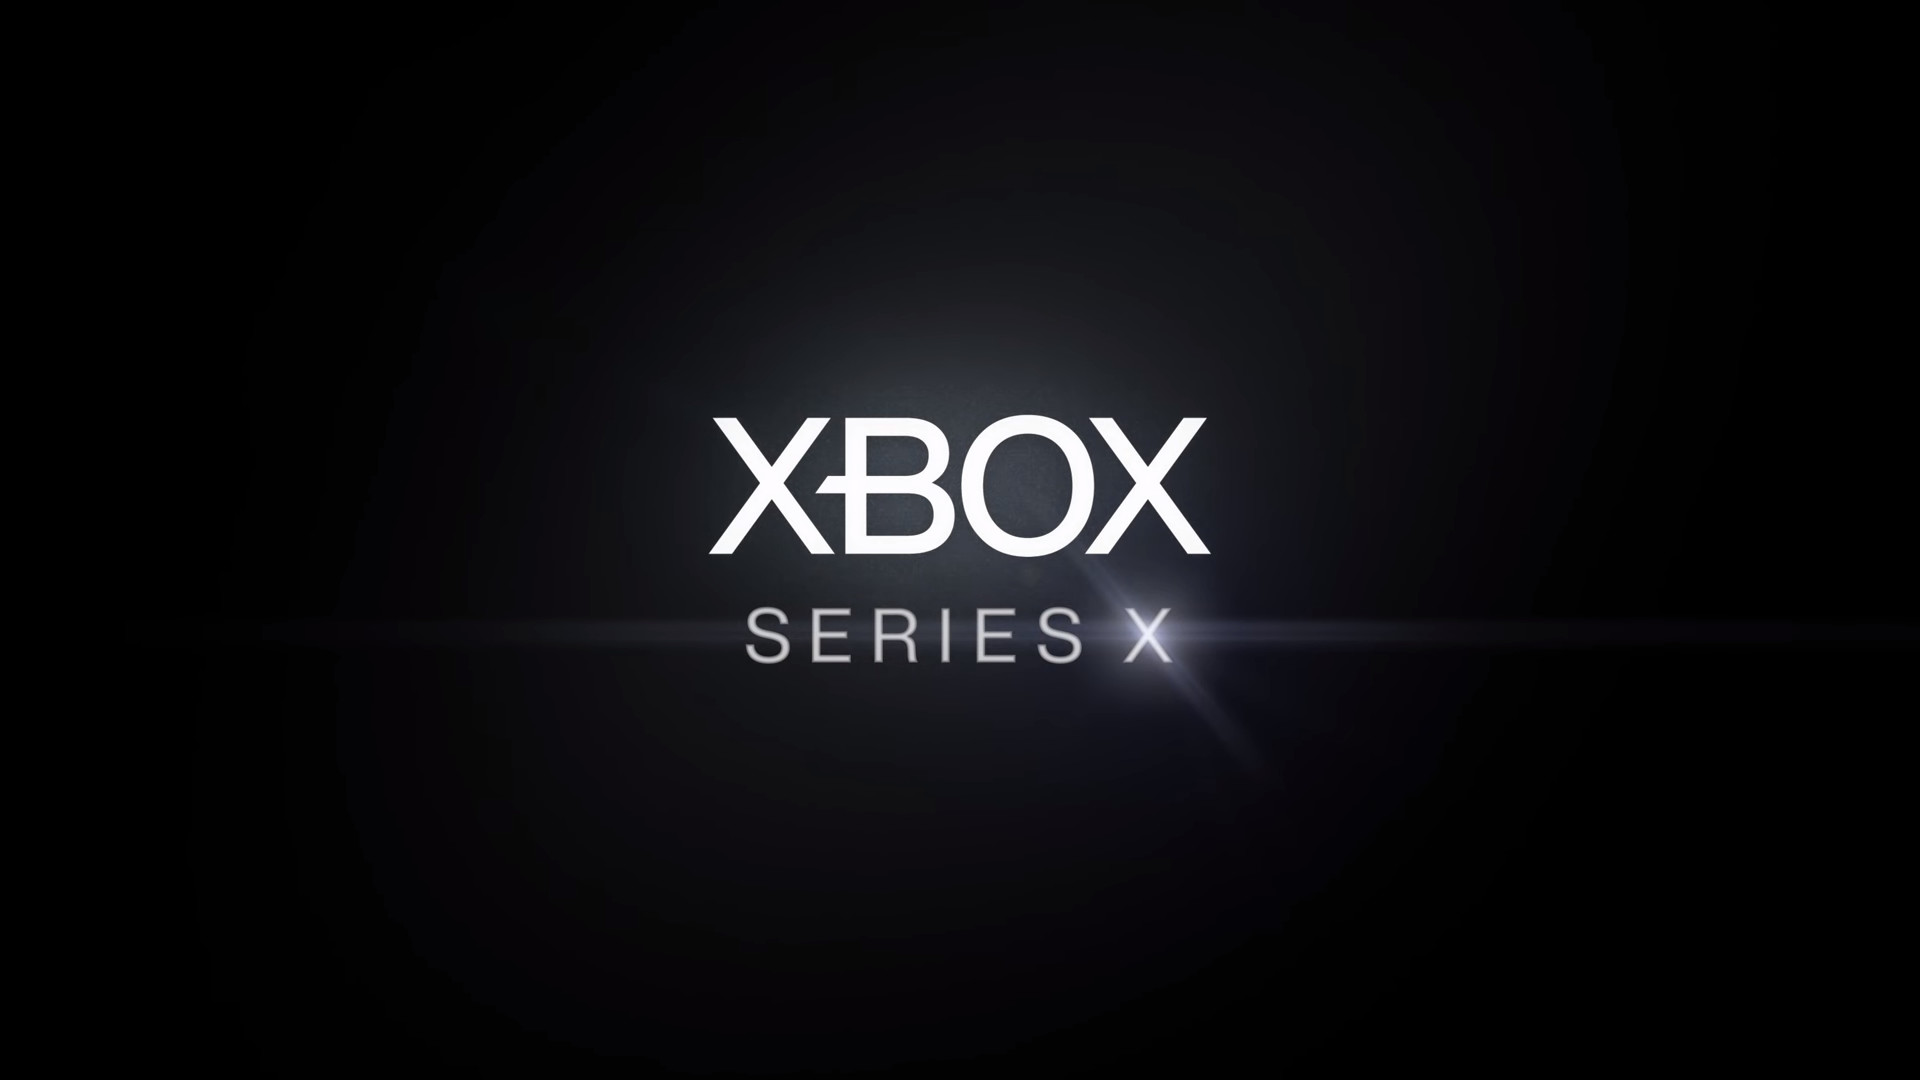 Rumor Suggests Microsoft Could Show Off Xbox Series X Gameplay Later This Week Neowin